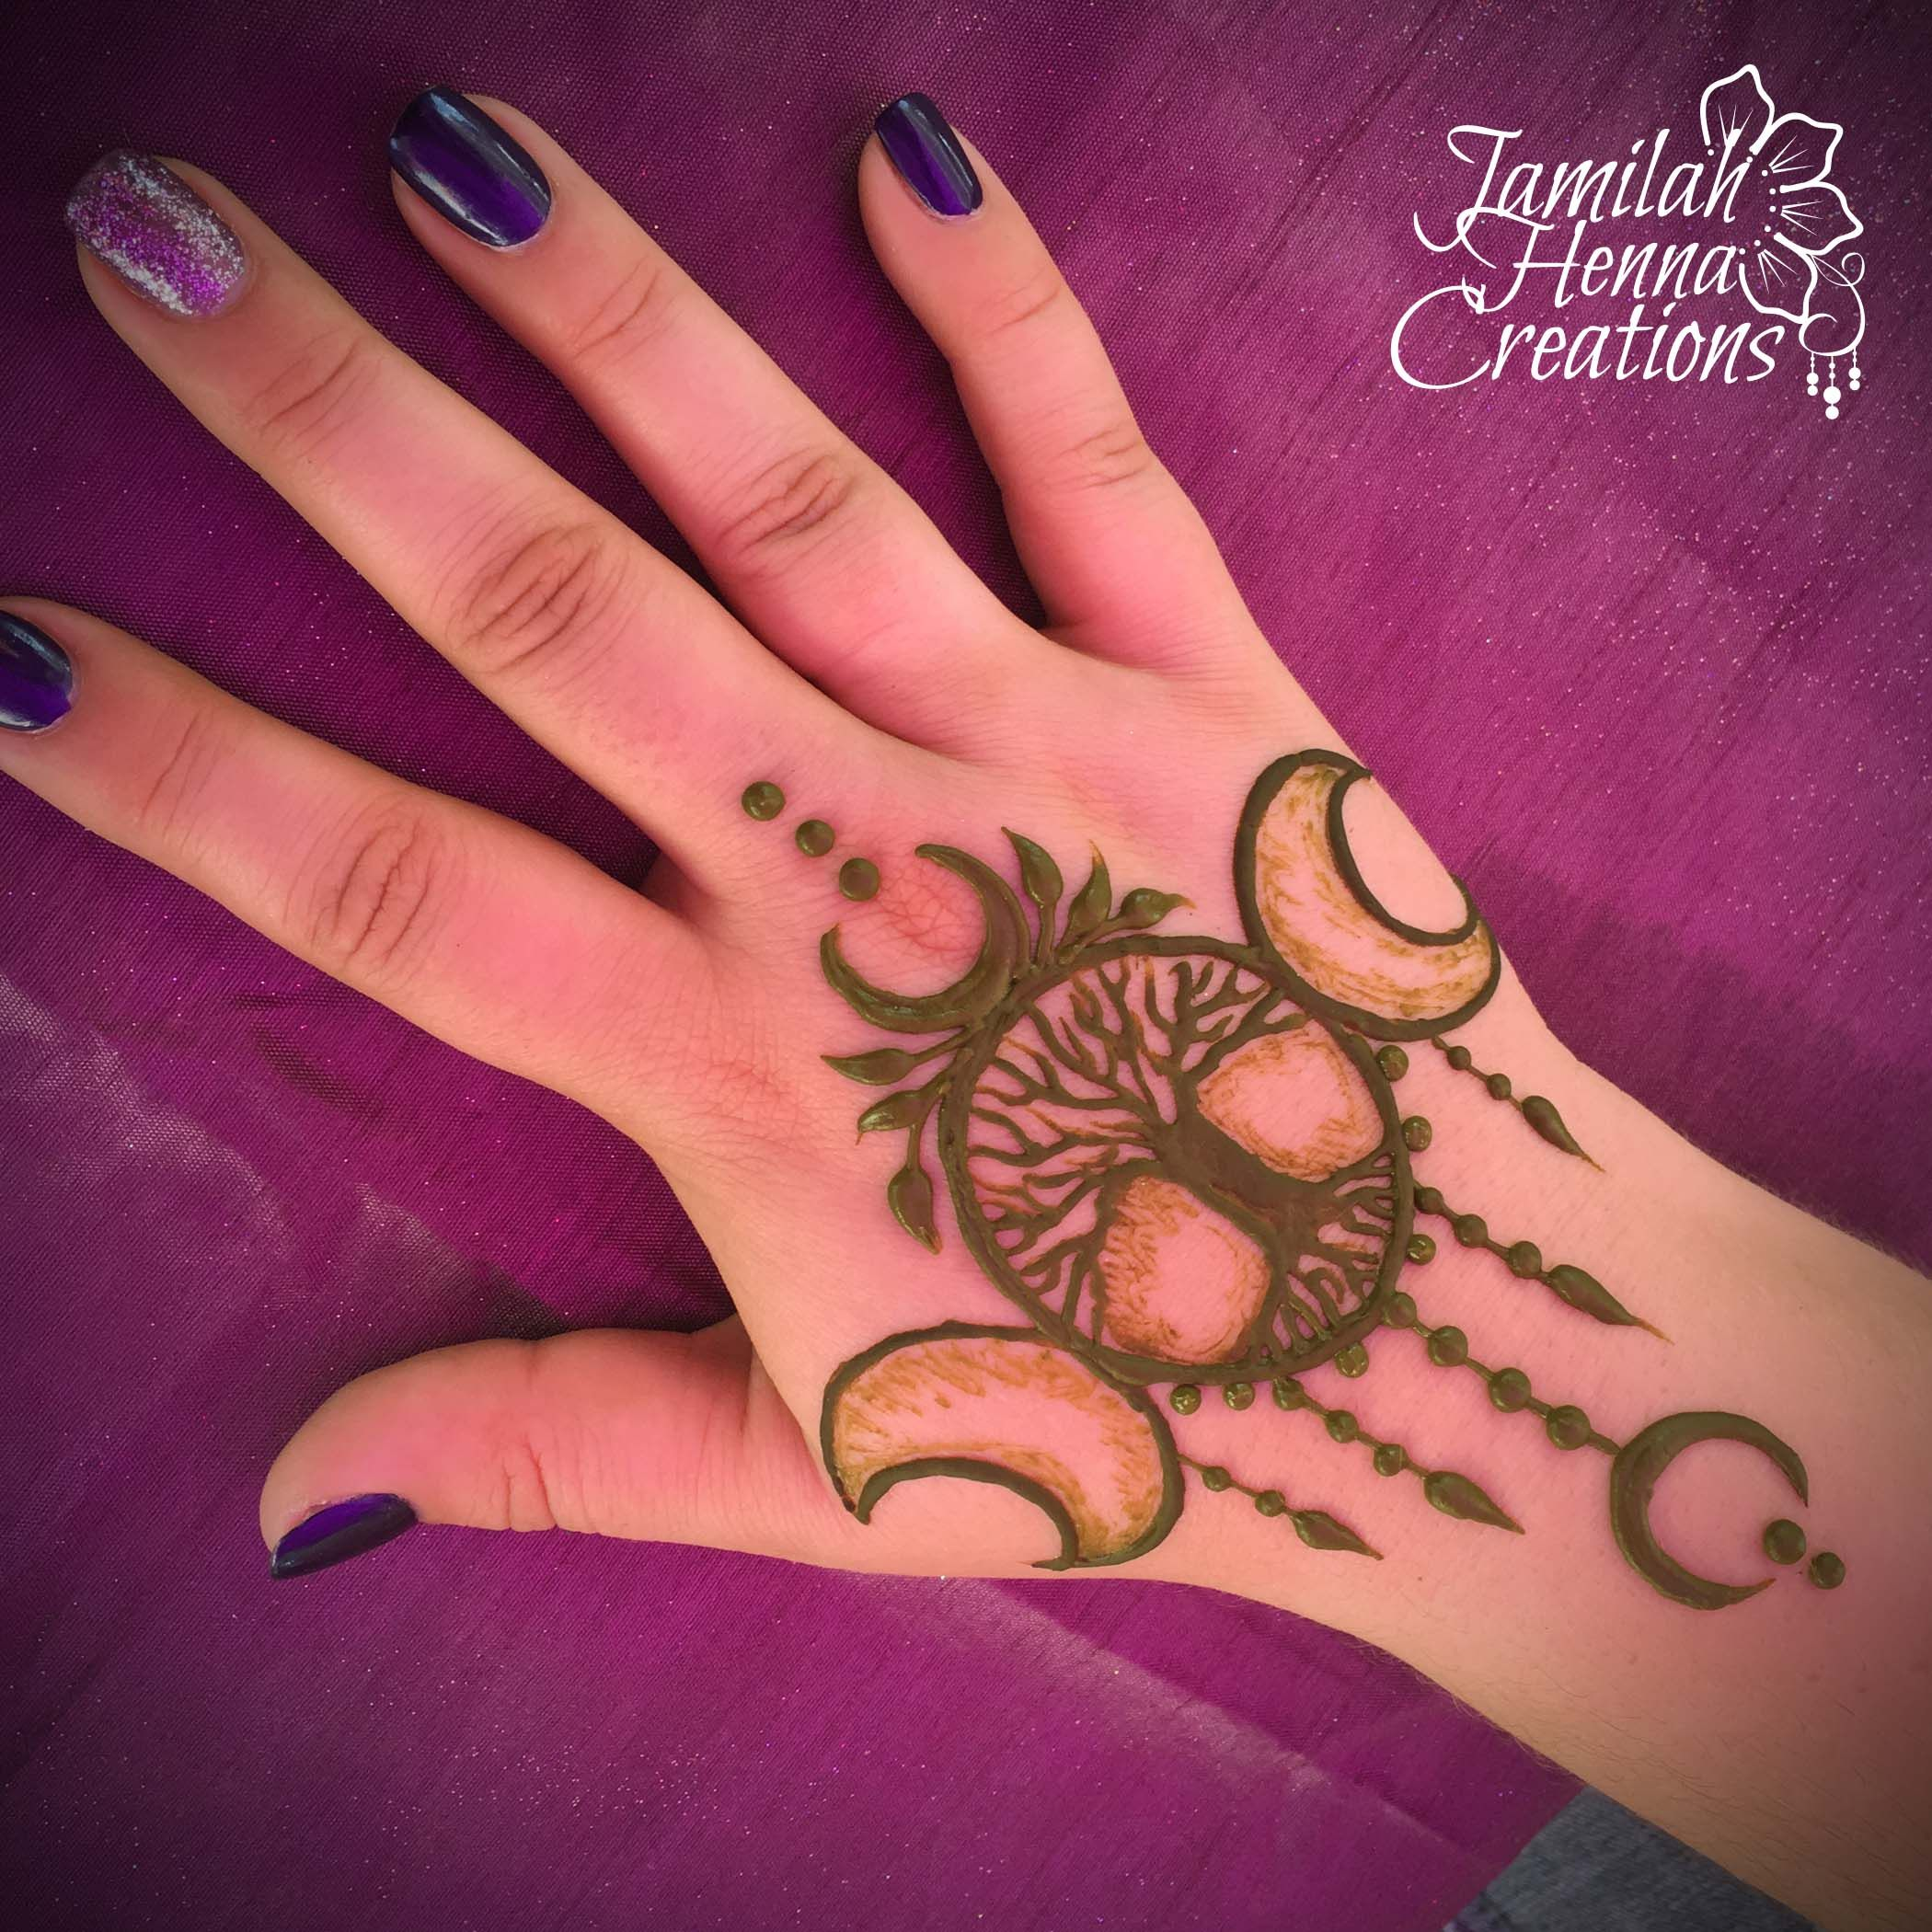 Inflicting Ink Tattoo Henna Themed Tattoos: Tree Of Life Moon Henna Design Www.jamilahhennacreations